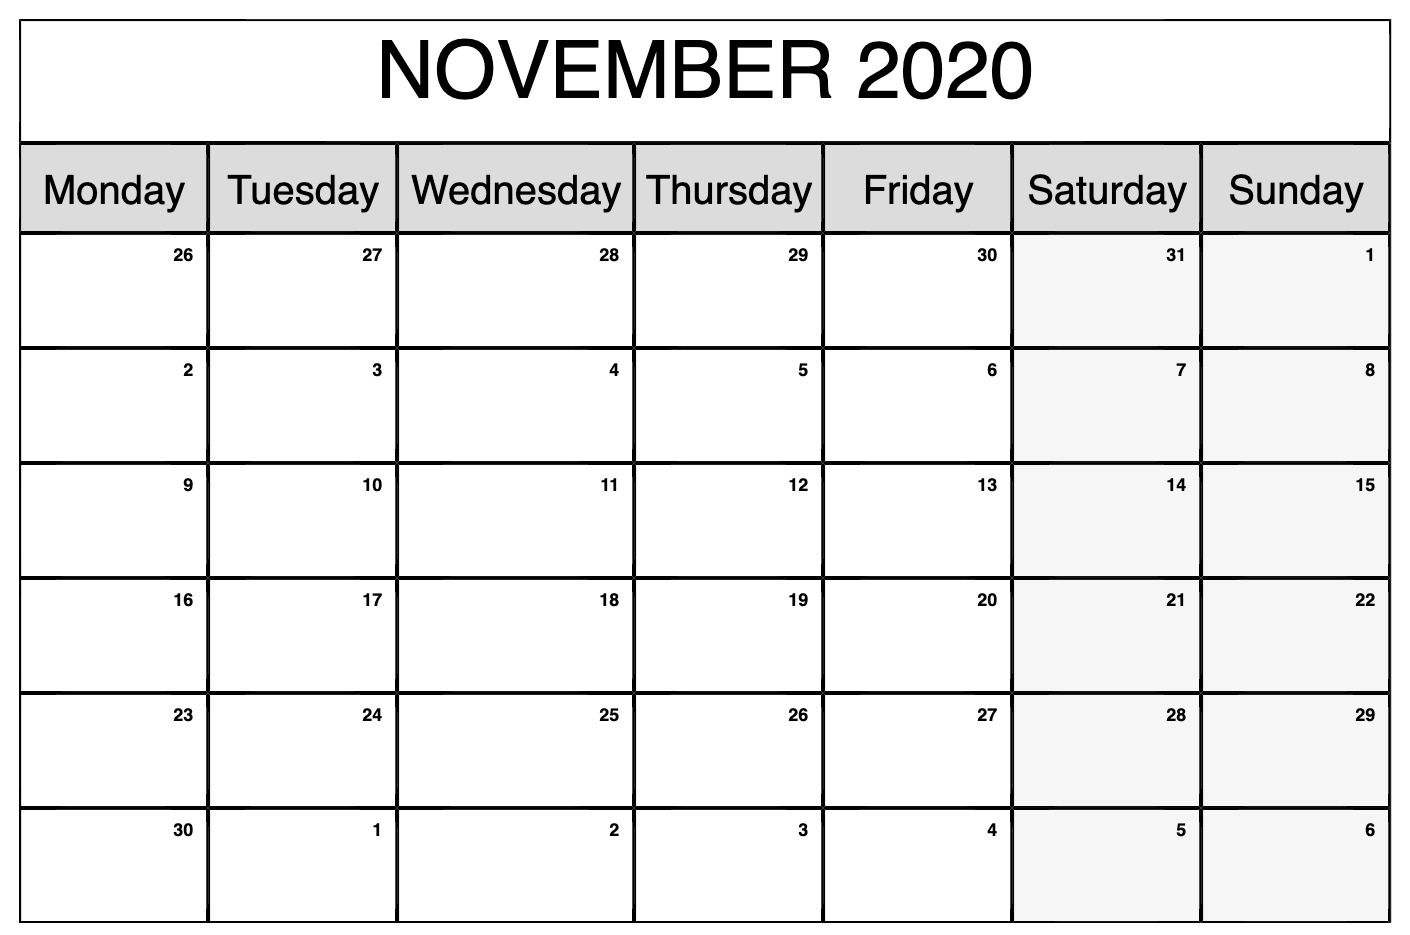 Printable November 2020 Calendar | Calendar Printables regarding November Calendar Excel 2020